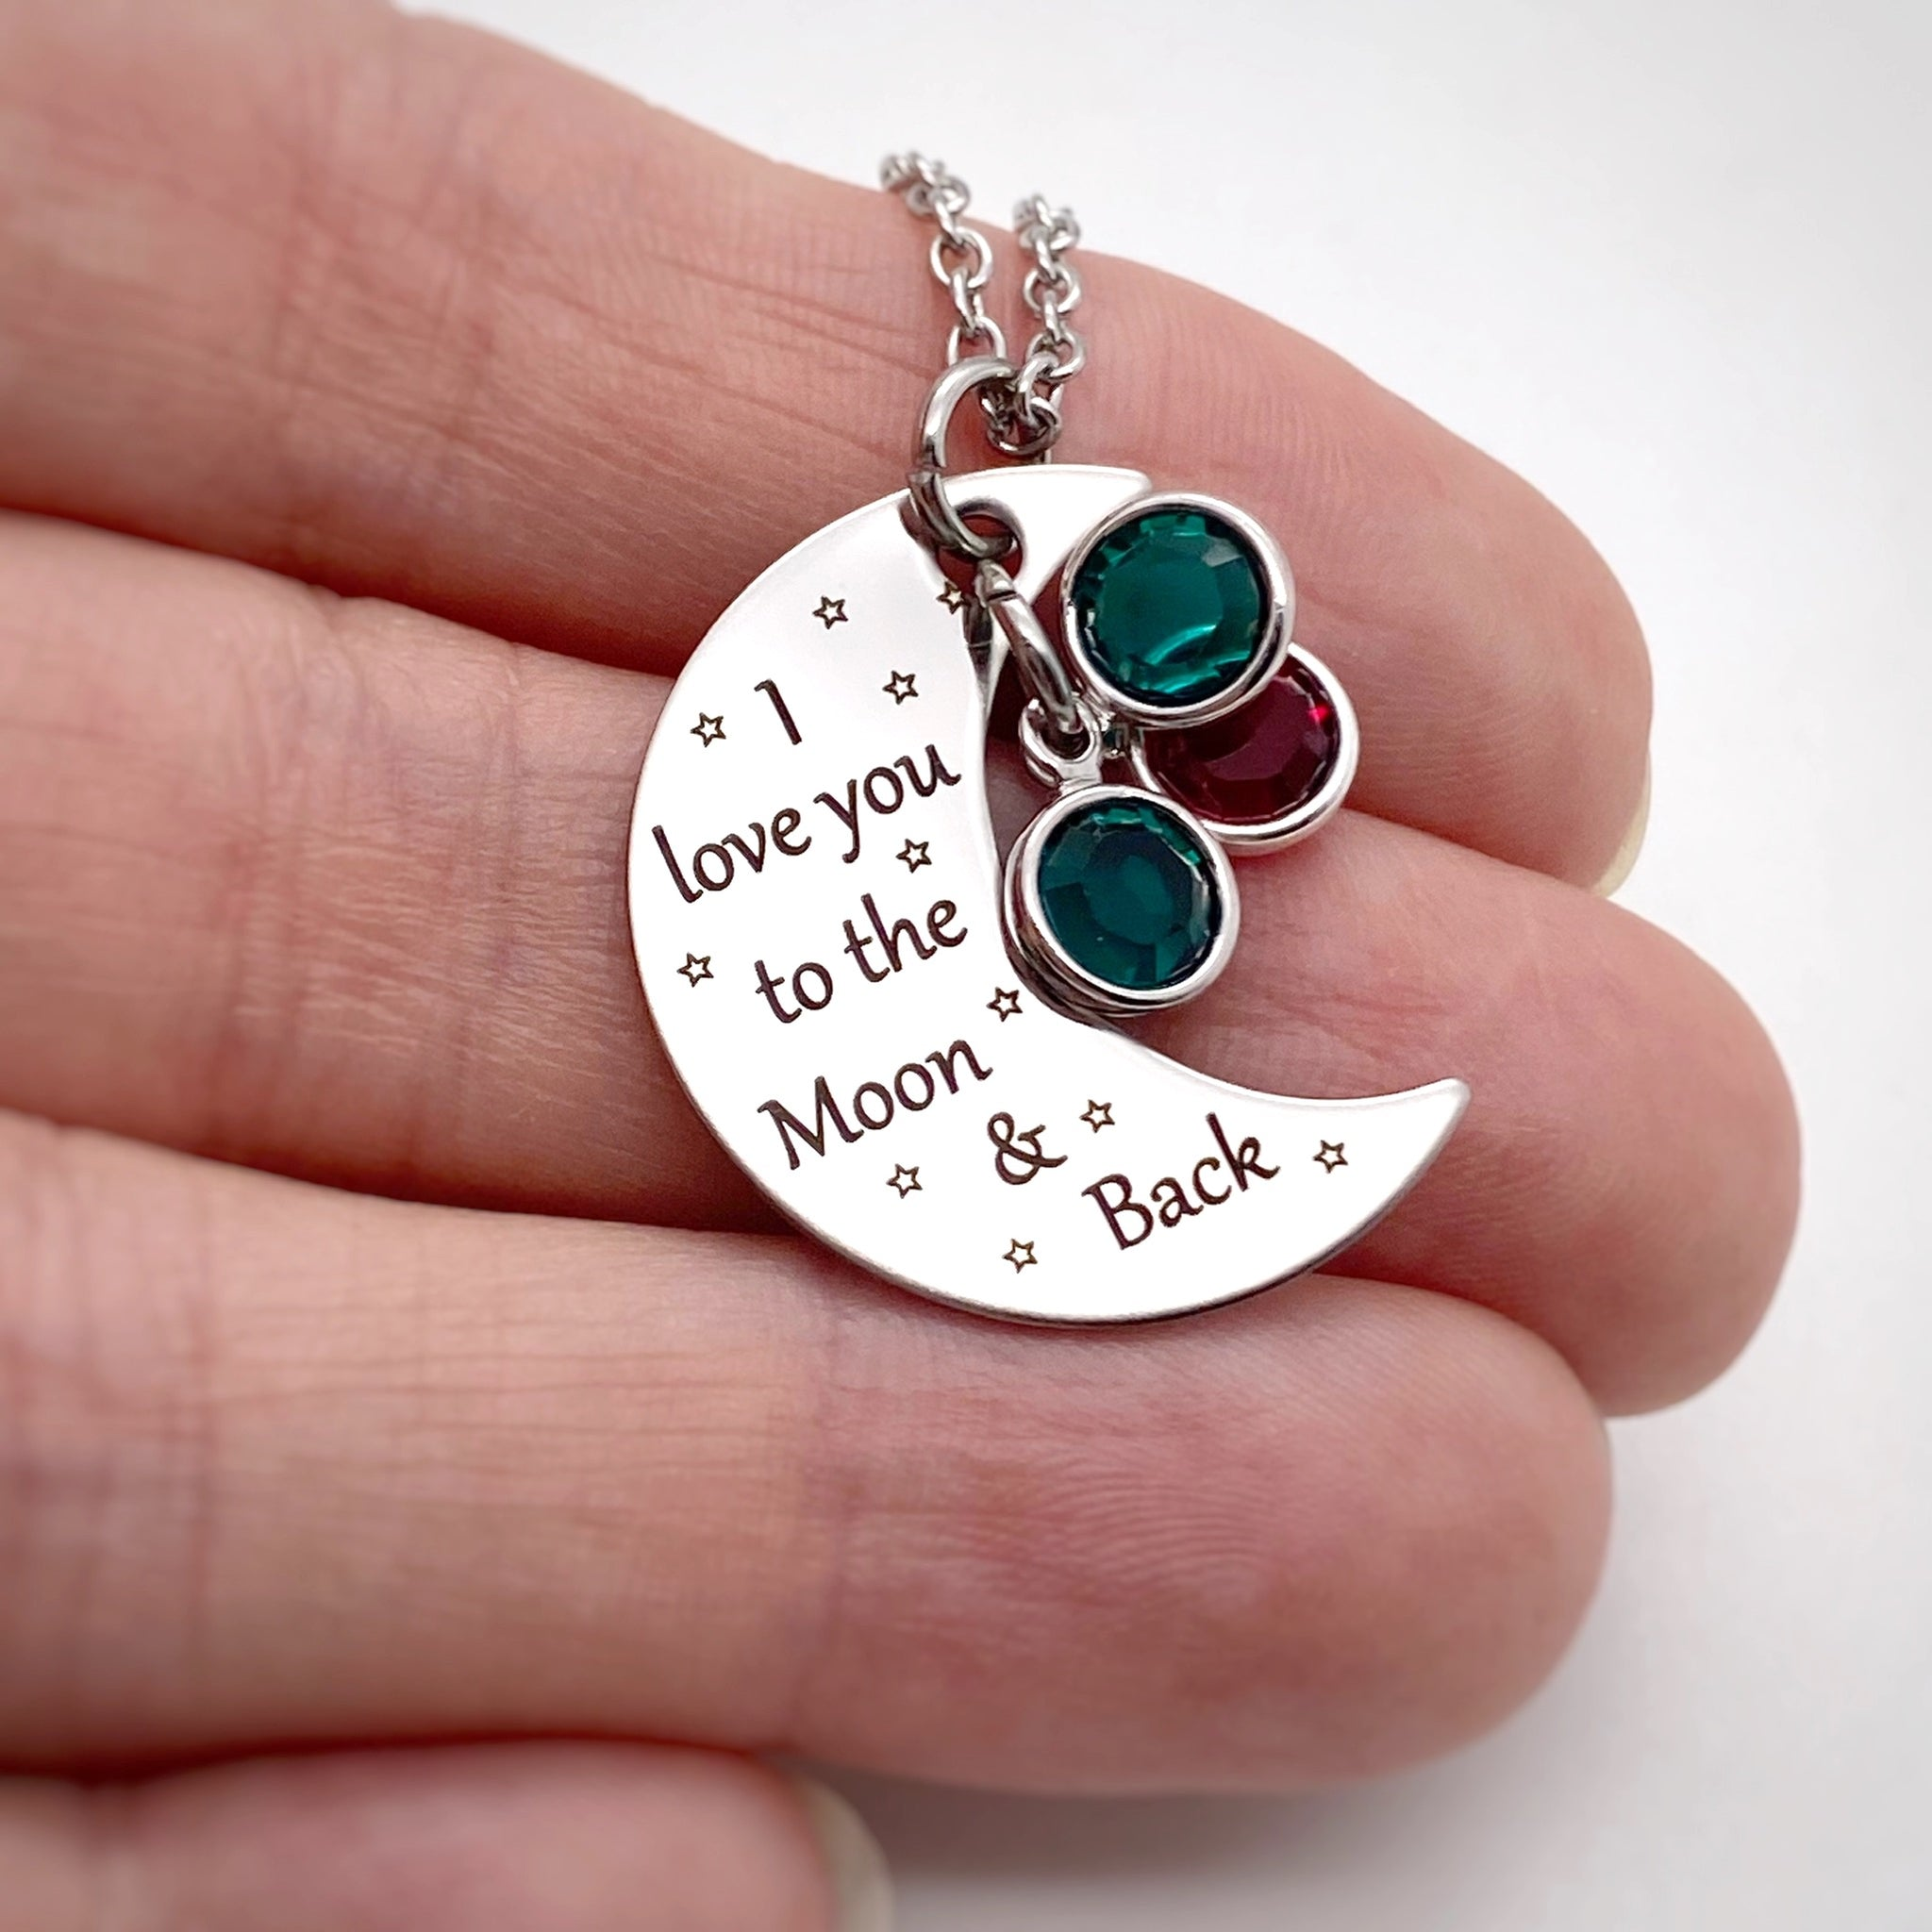 Details about  /I love you to the moon and back Bangle Bracelet Birthstone Crescent Mom Gift